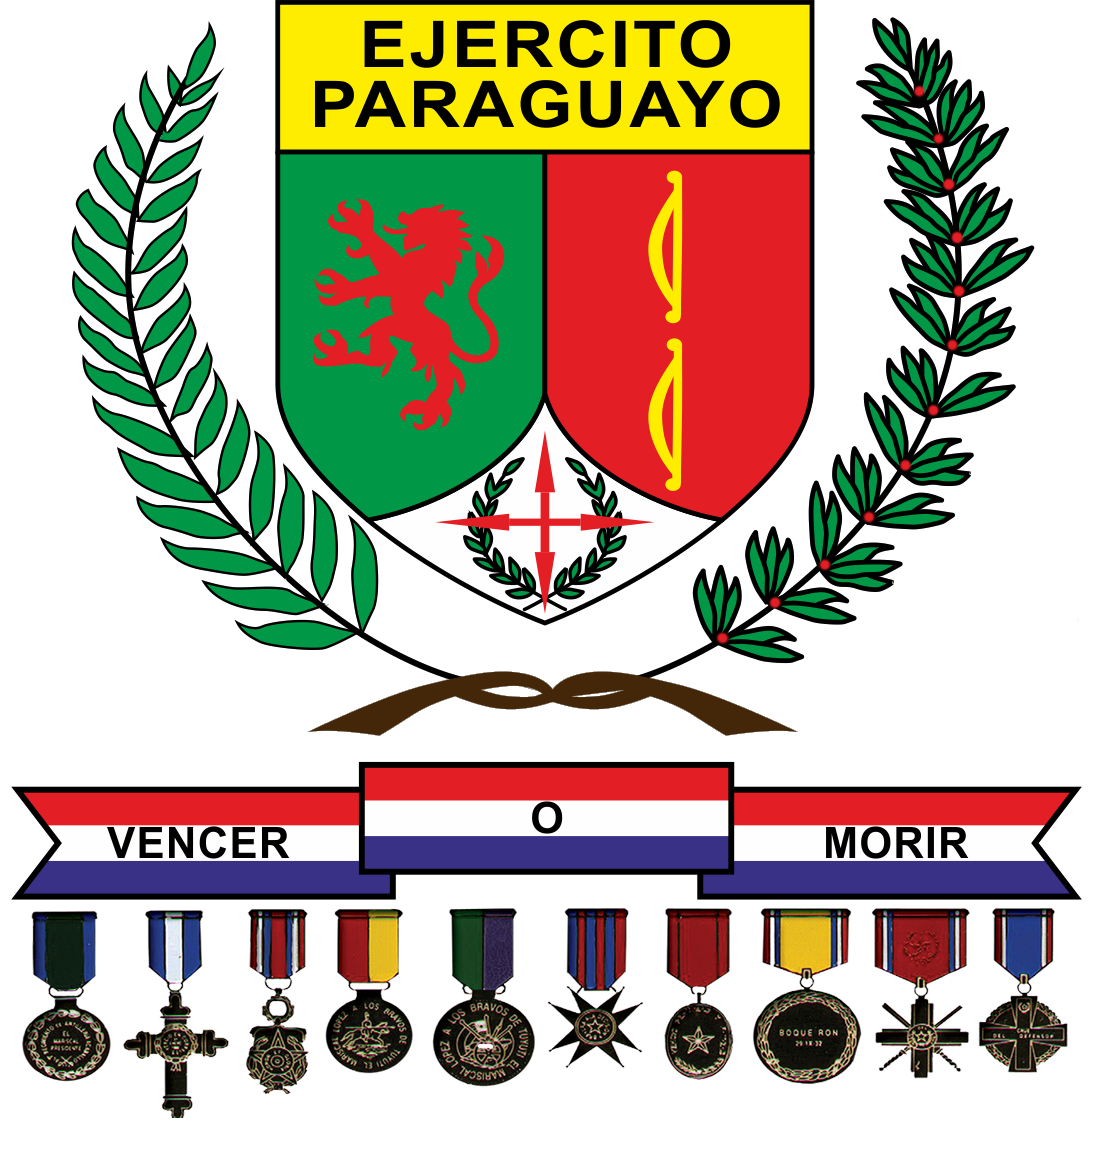 ejercito_paraguayo_escudo_2.png